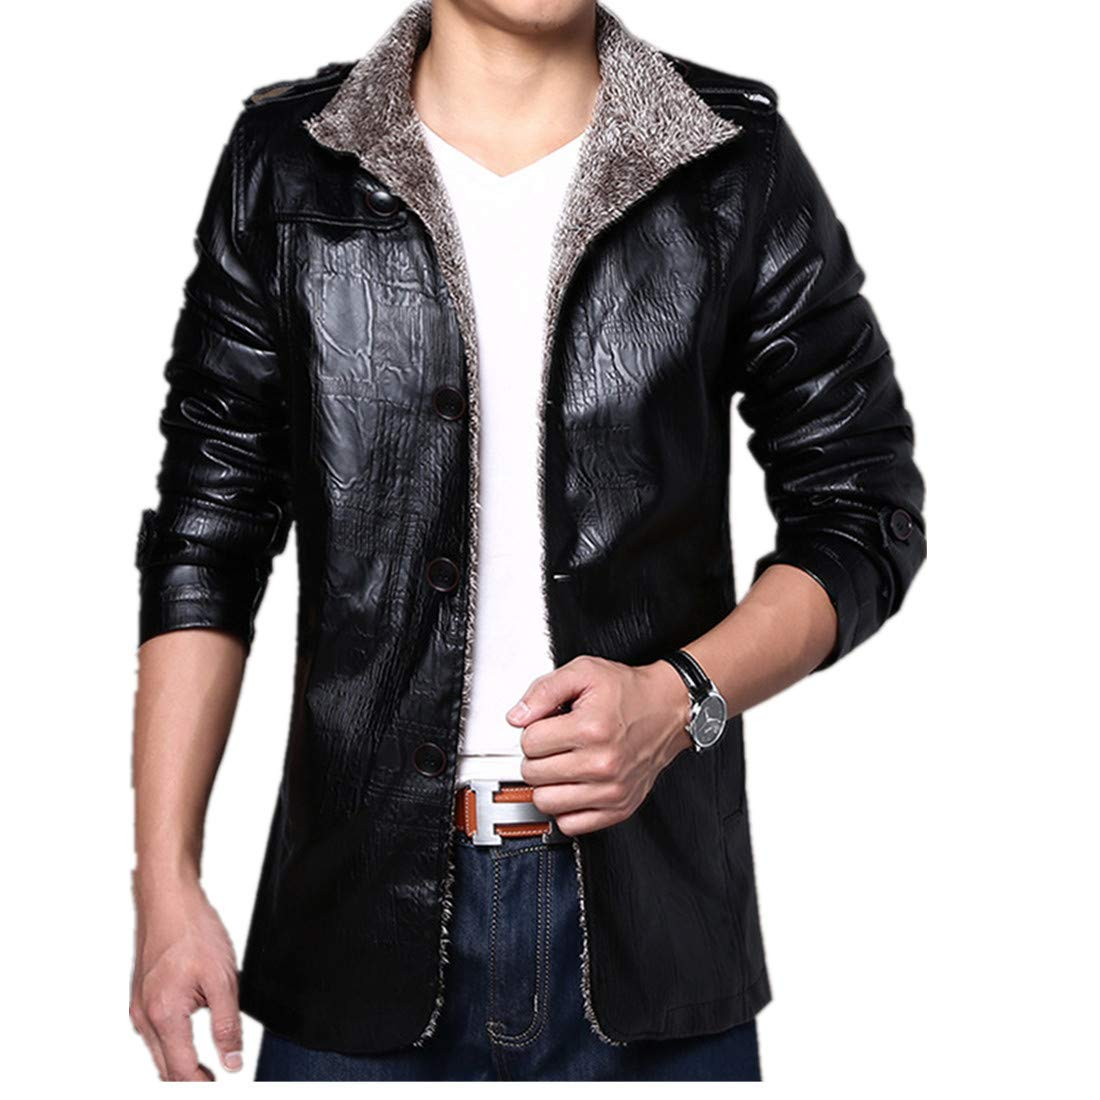 533ed561f413 XWDA PU Leather Jacket Men Thicken Fur Lined Coat Warm Stand Collar Vintage  Outwear with Buttons